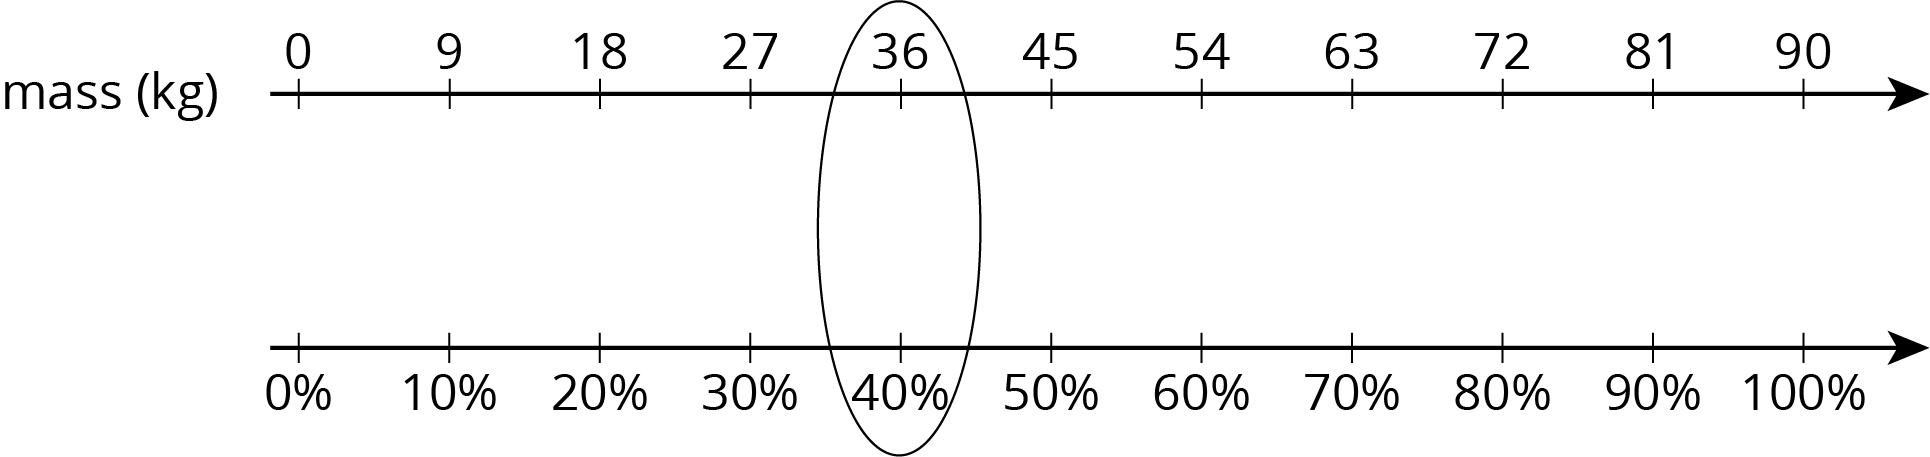 "A double number line with eleven evenly spaced tick marks. The top number line is labeled ""mass in kiograms"" andd starting with the first tick mark 0, 9, 18, 27, 36, 45, 54, 63, 72, 81, 90 are labeled. The bottom number line is not labeled and starting with the first tick mark zero percent, 10 percent, 20 percent, 30 percent, 40 percent, 50 percent, 60 percent, 70 percent, 80, percent, 90 percent, 100 percent are labeled."